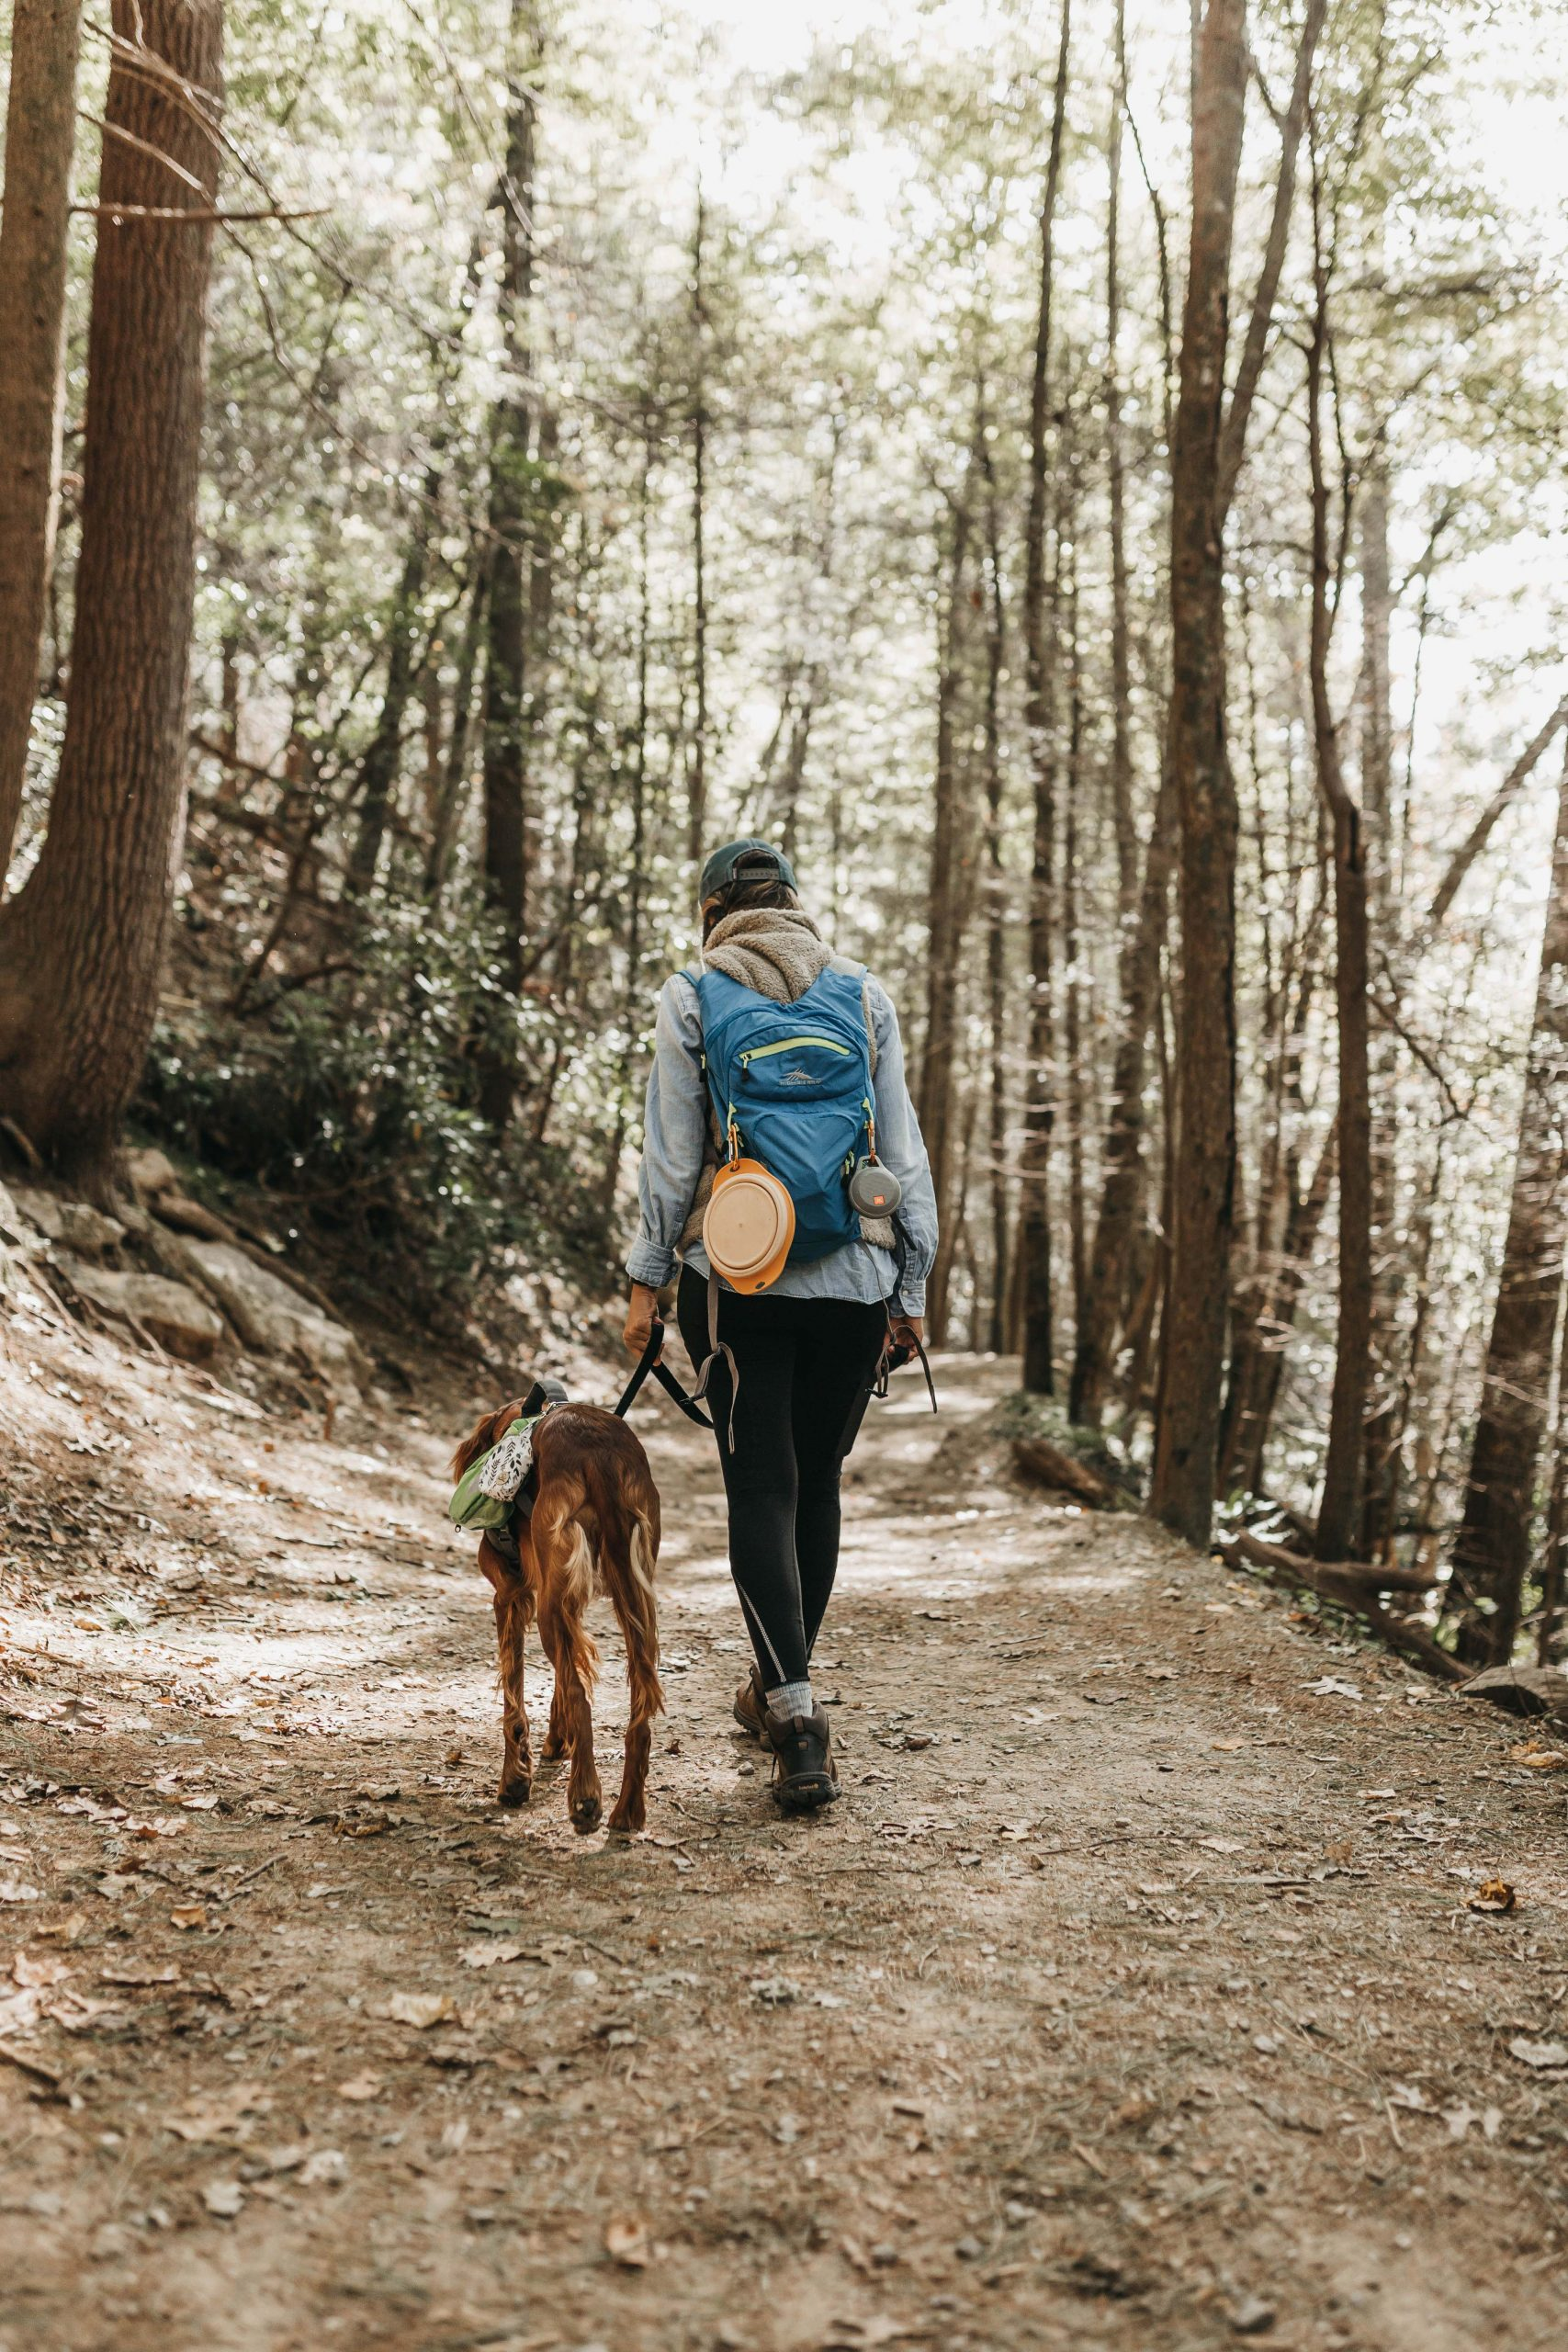 9 Best Dog Walking Shoes for Women - Image by Camylla Battani via Unsplash.